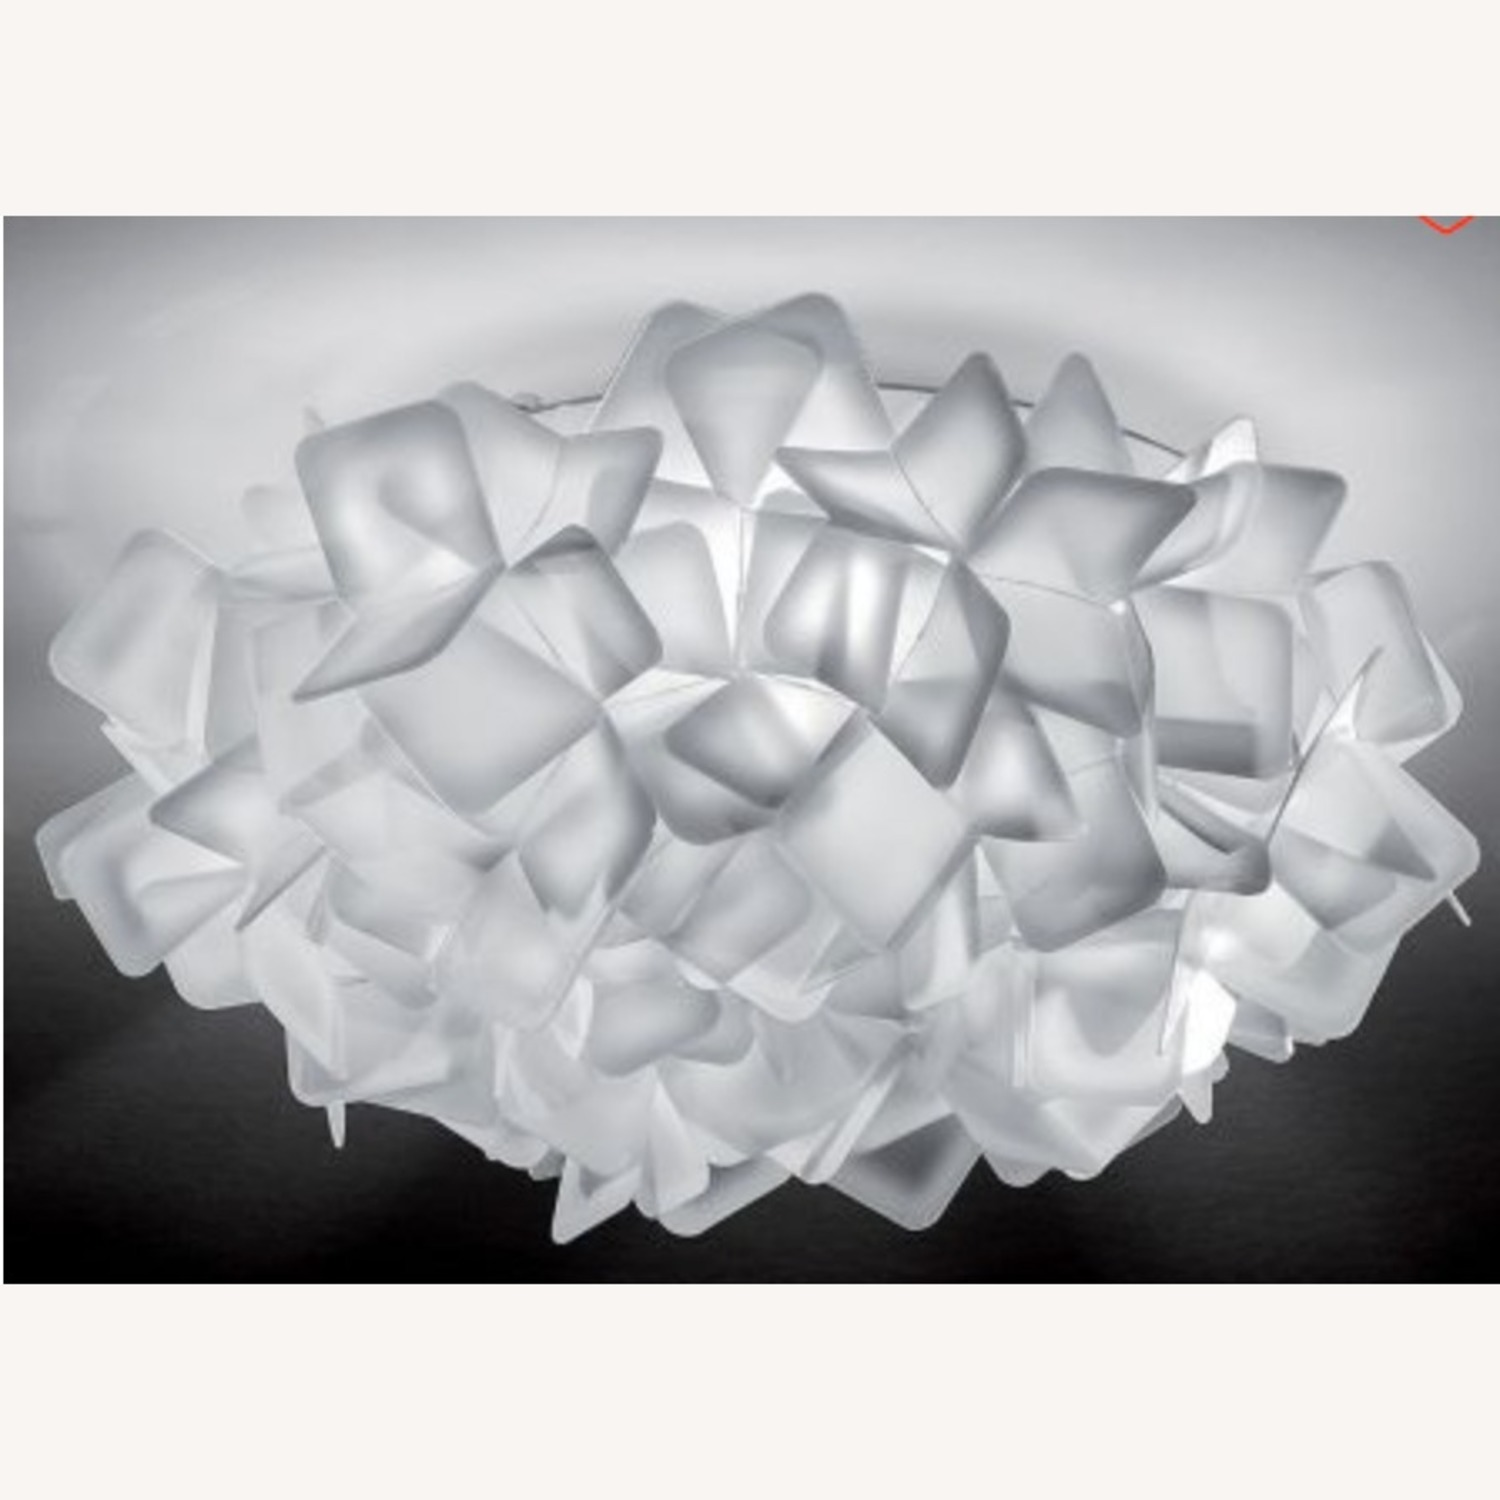 Slamp Clizia Ceiling/Wall Light in Small White/Clear - image-3